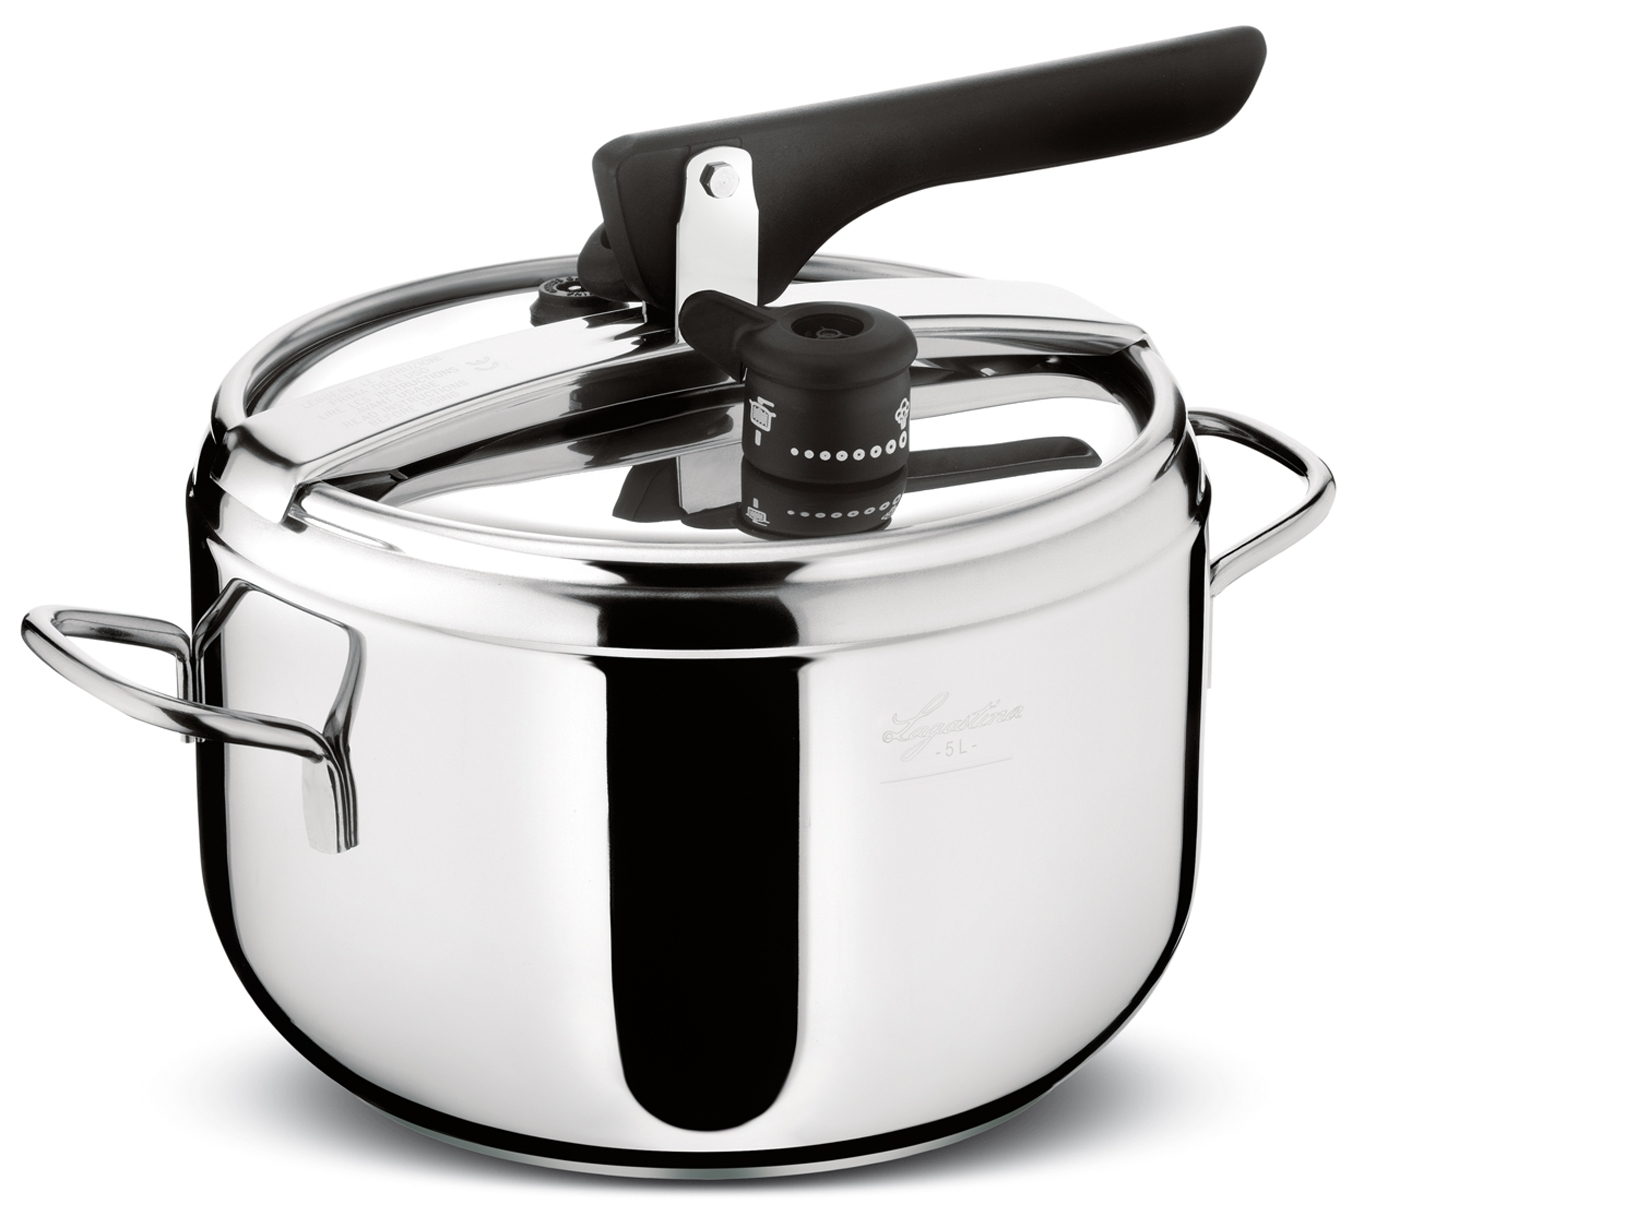 Buy Pressure Cooker Irradial Control Lt 3106505 | Italy2Us.com